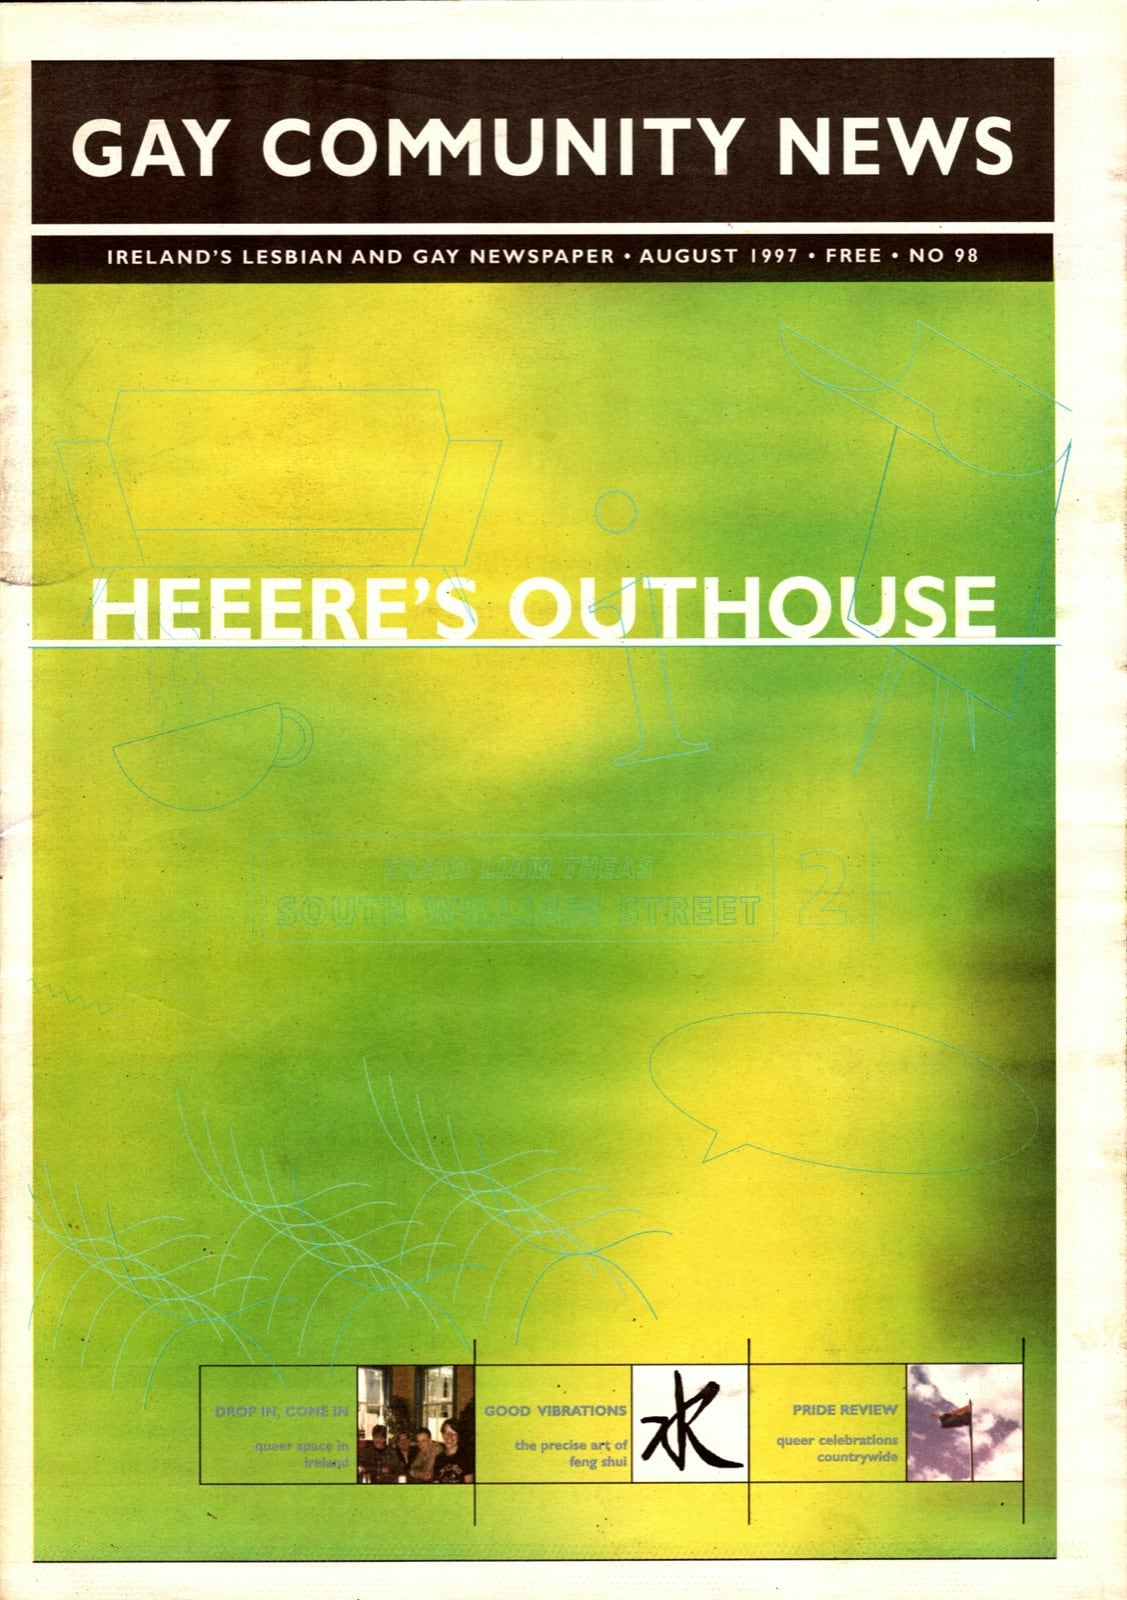 Some of GCN's covers from 1992 with a green graphic and the text 'here's outhouse'